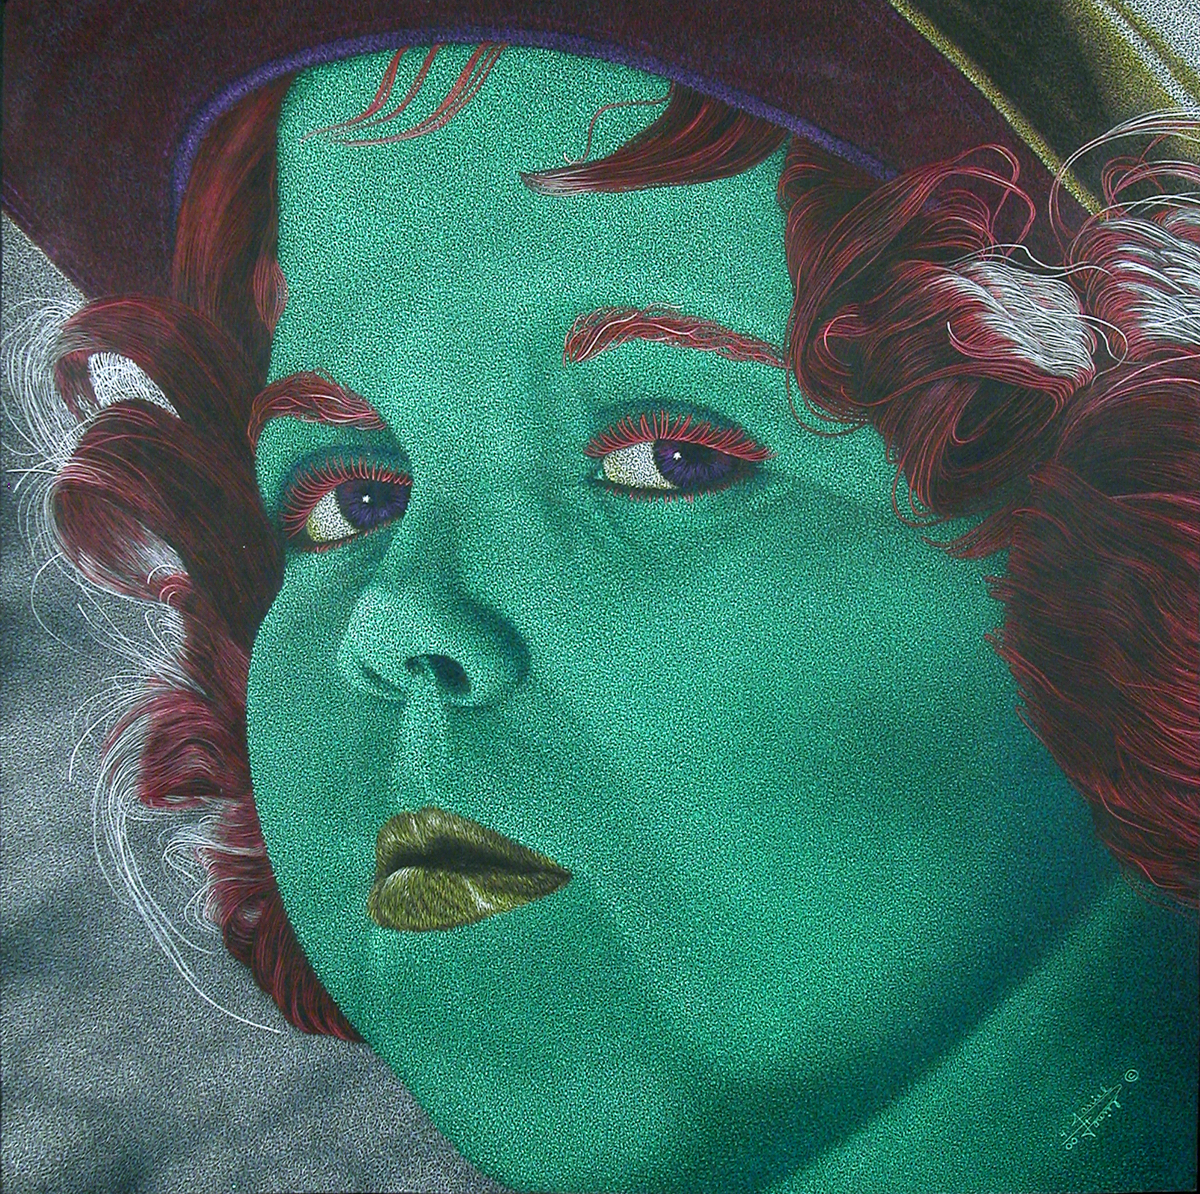 Drawing of woman with red hair and a green face and mouth by Daniel Watson